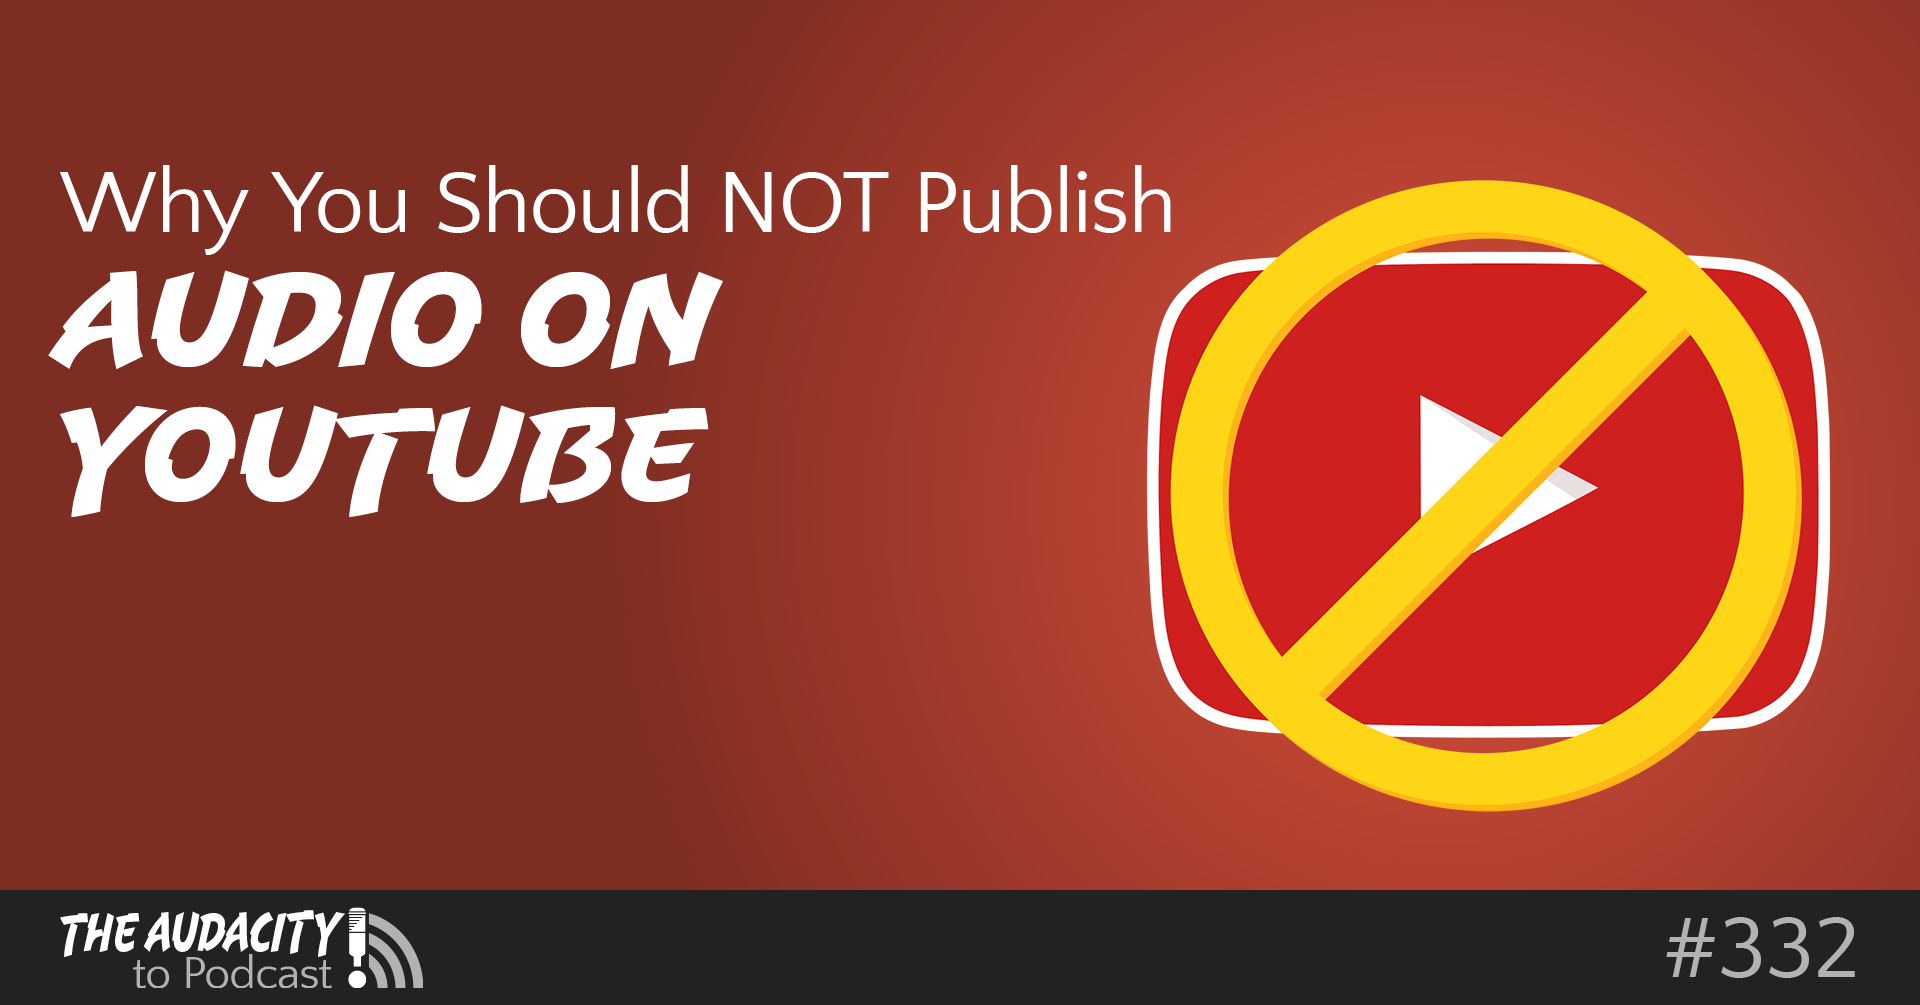 Why You Should NOT Publish Audio Podcasts on YouTube